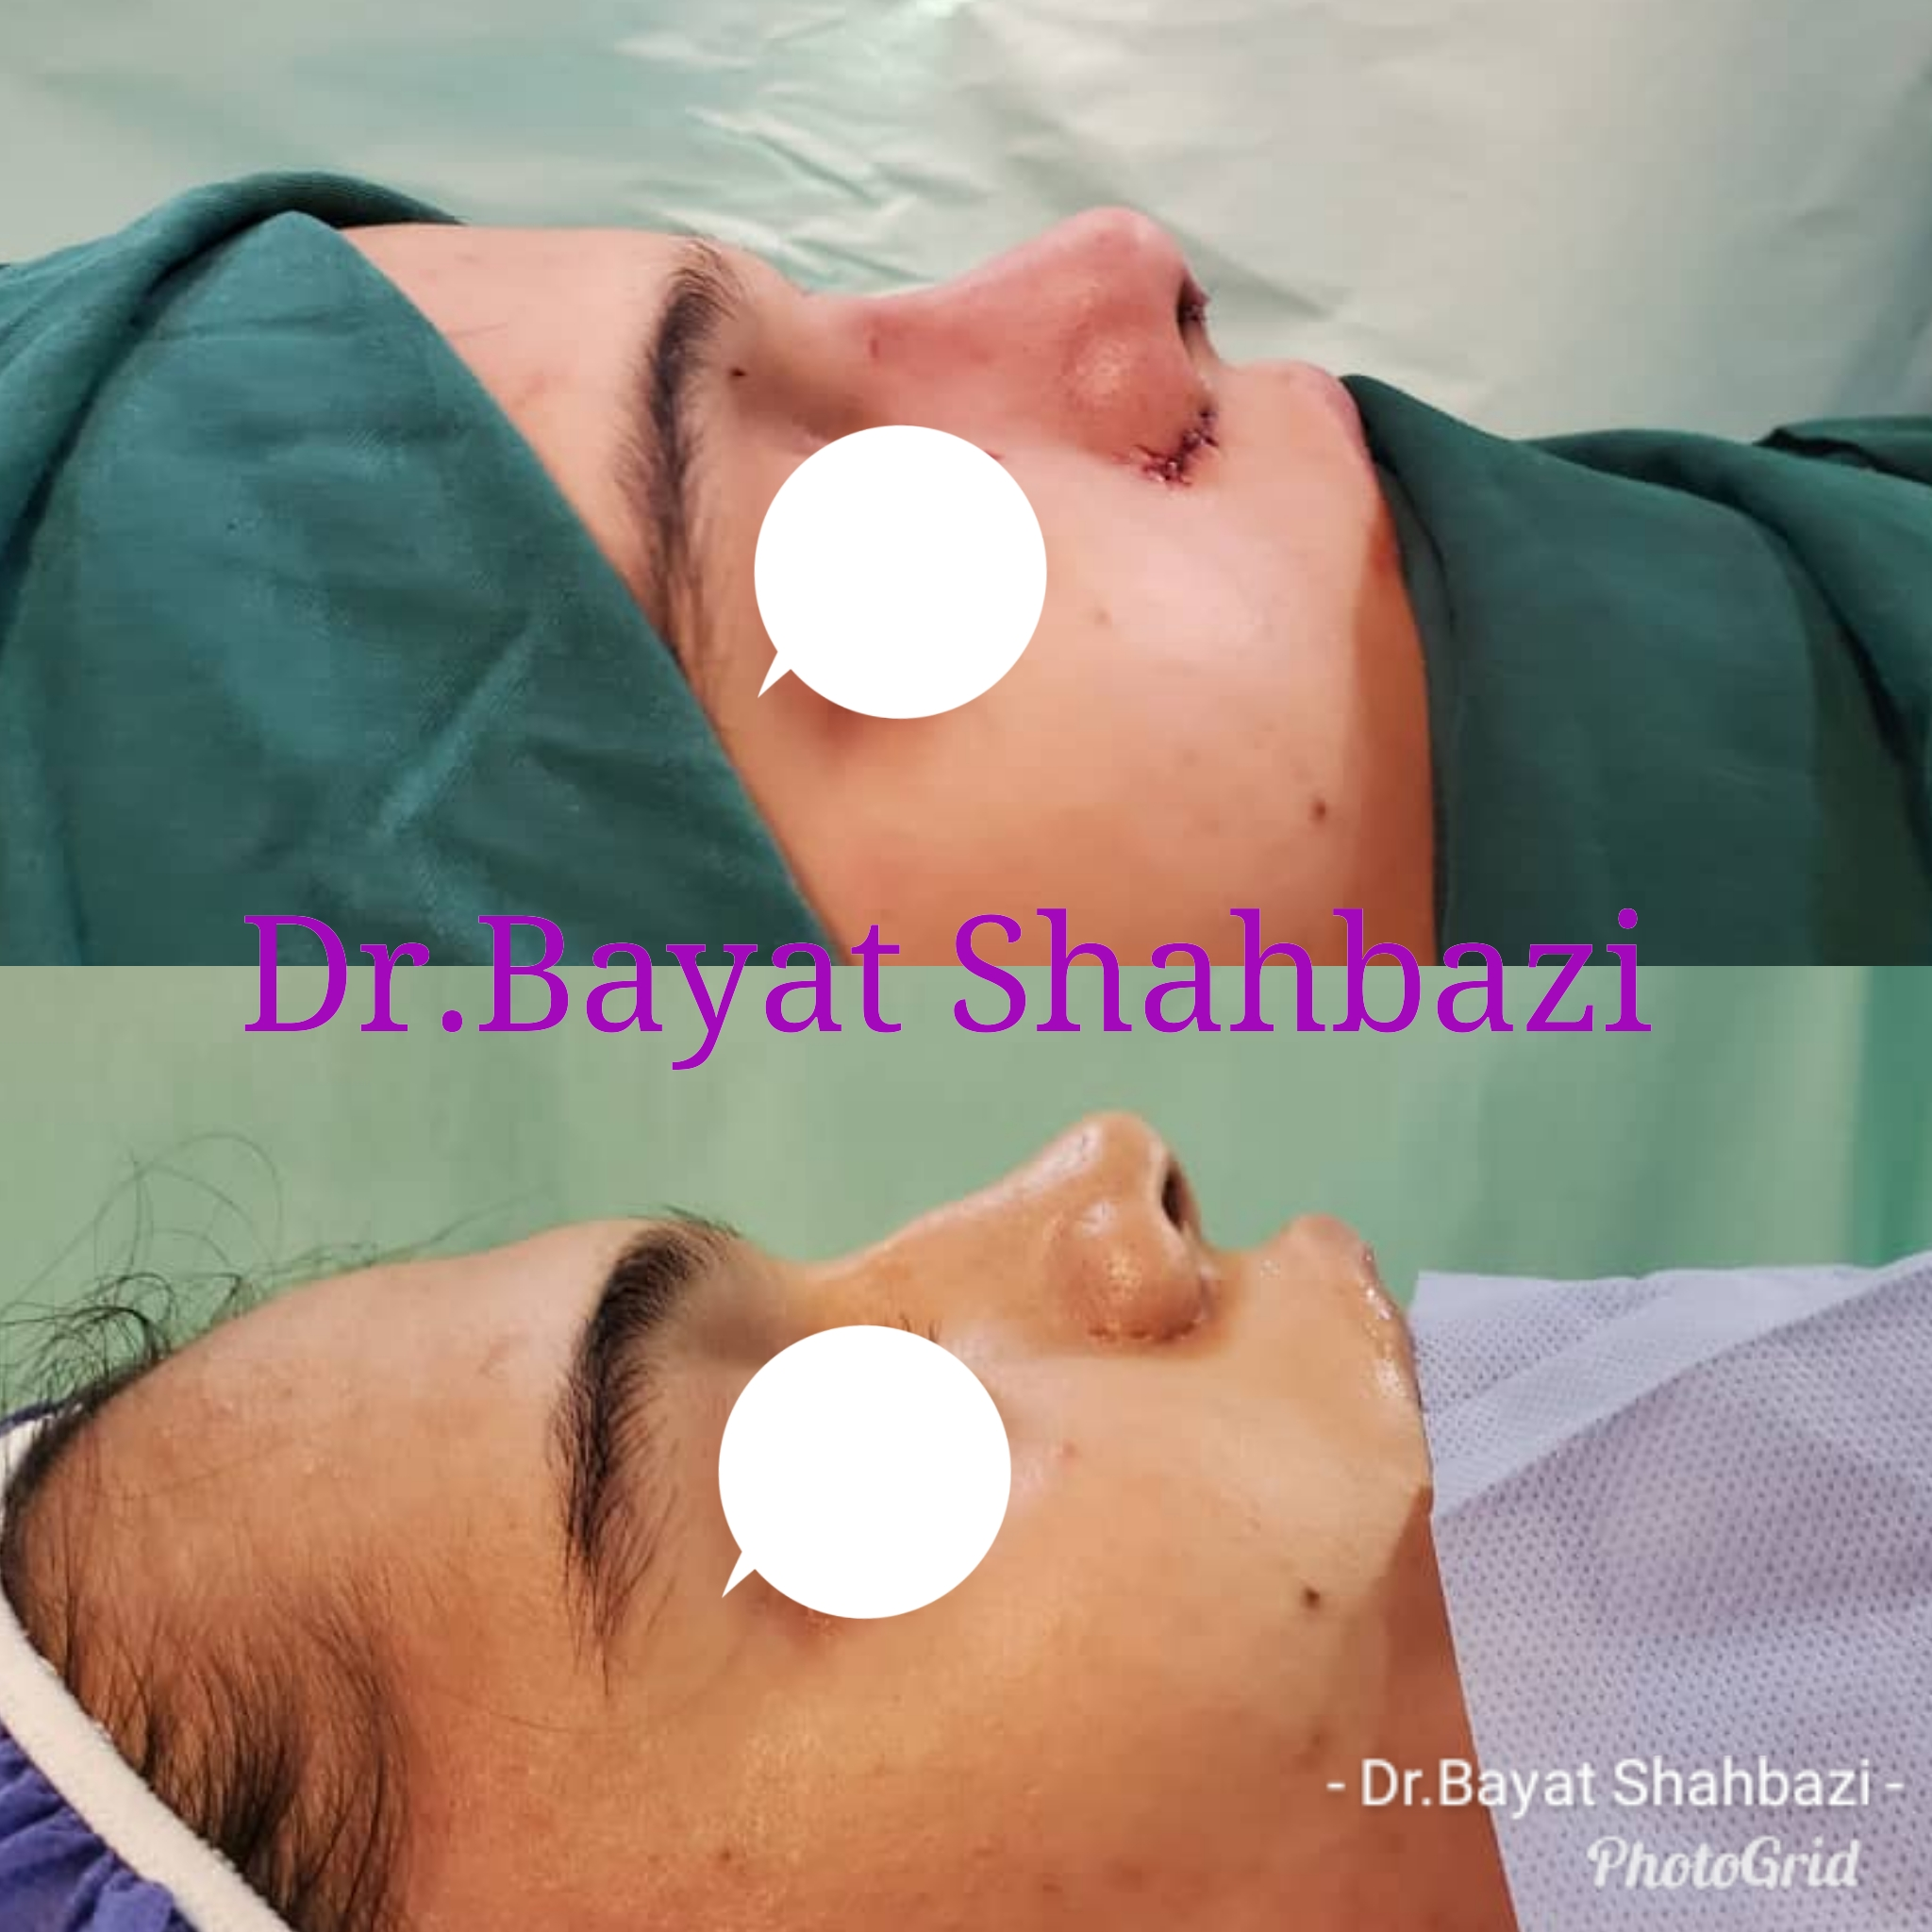 the best Nose Surgery, rhinoplasty surgery, Facelift and Necklift, Otoplasty, Ear Cosmetic Surgery, Forehead lift, Body contouring, Facelift surgery, Facial prostheses, Body contouring, Tummy tuck and Abdominoplasty in iran is Dr bayatshahbazi, drbayatshahbazi, Dr bayat shahbazi